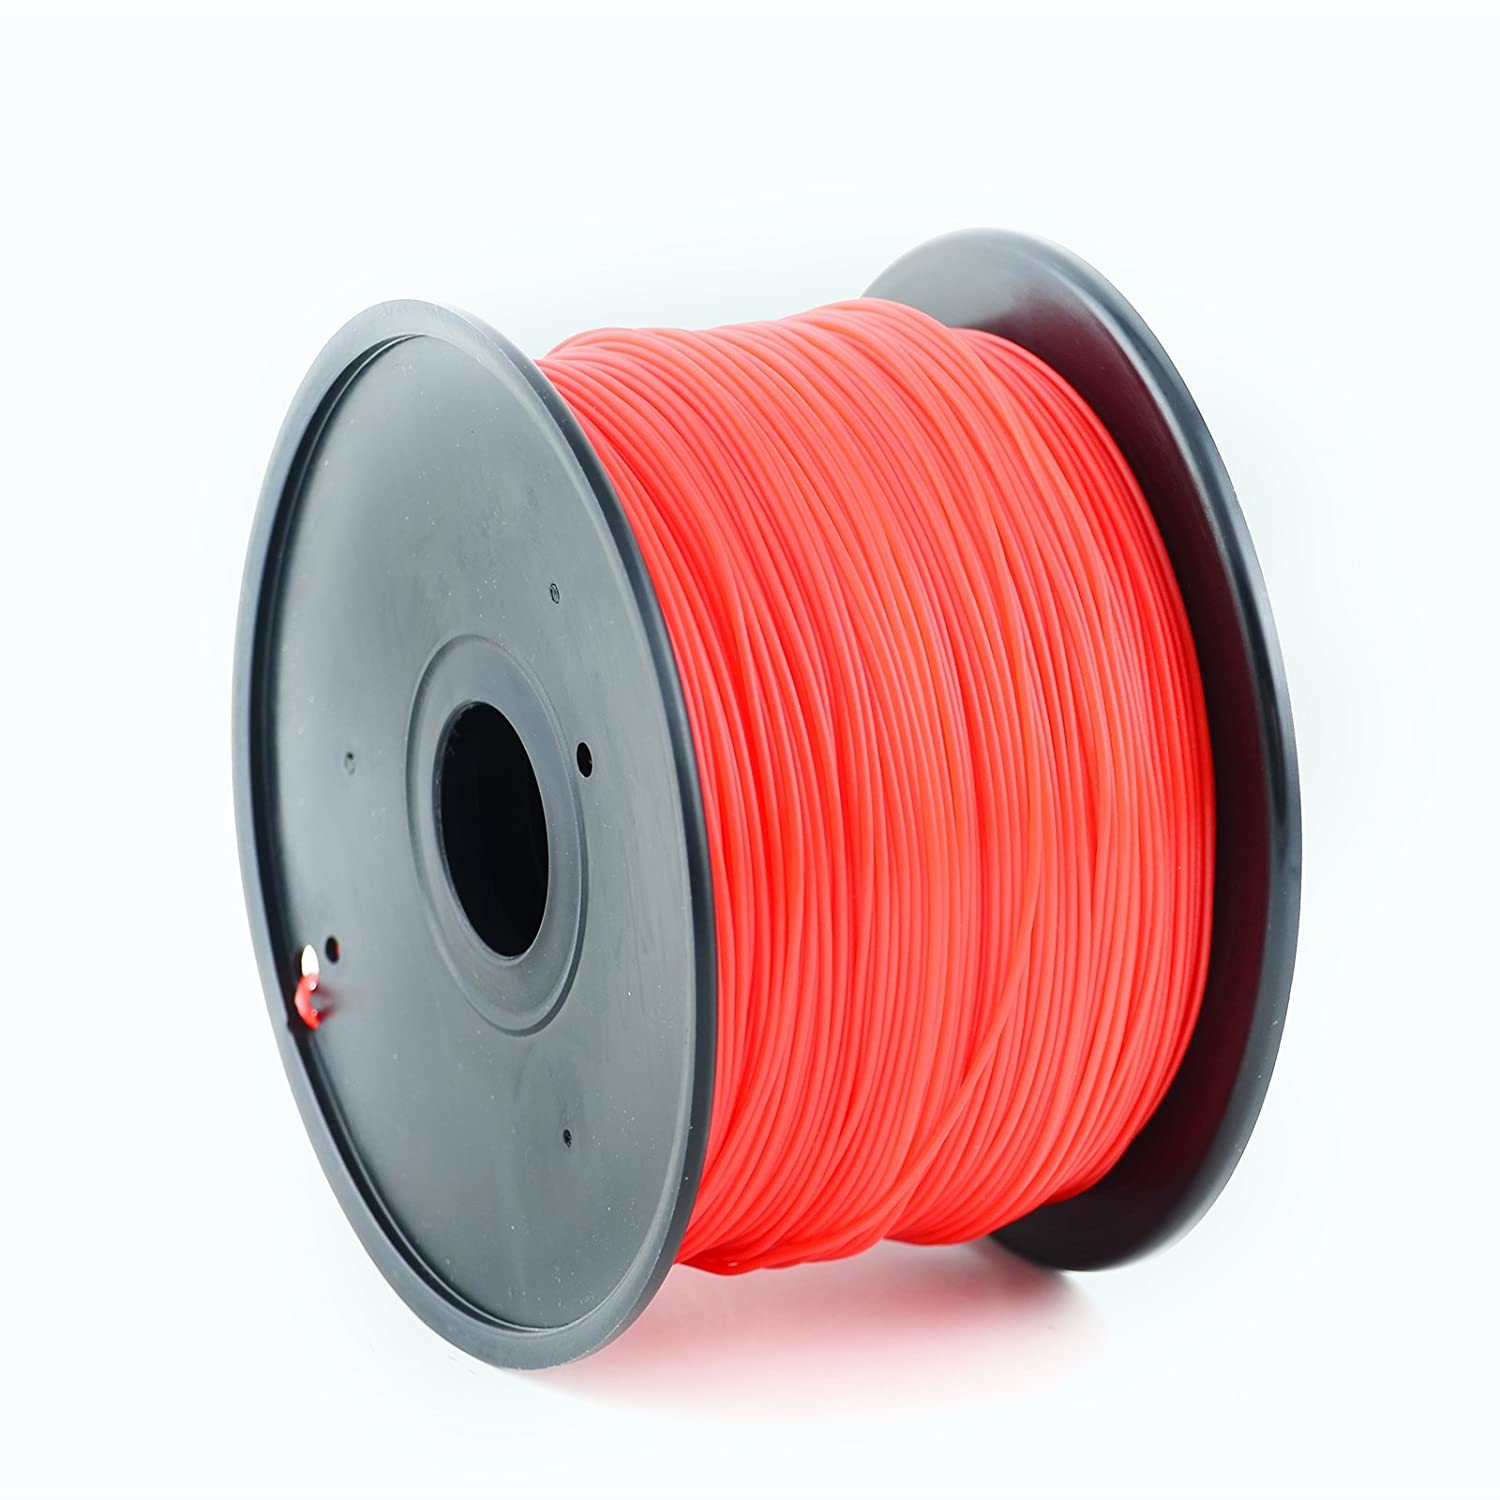 1.75mm PLA High Precision 3D Printing Filament (5 Metres) 30+ Exact Colours 3D Pen / Printer Supplies (5 Metres, Black) OEM